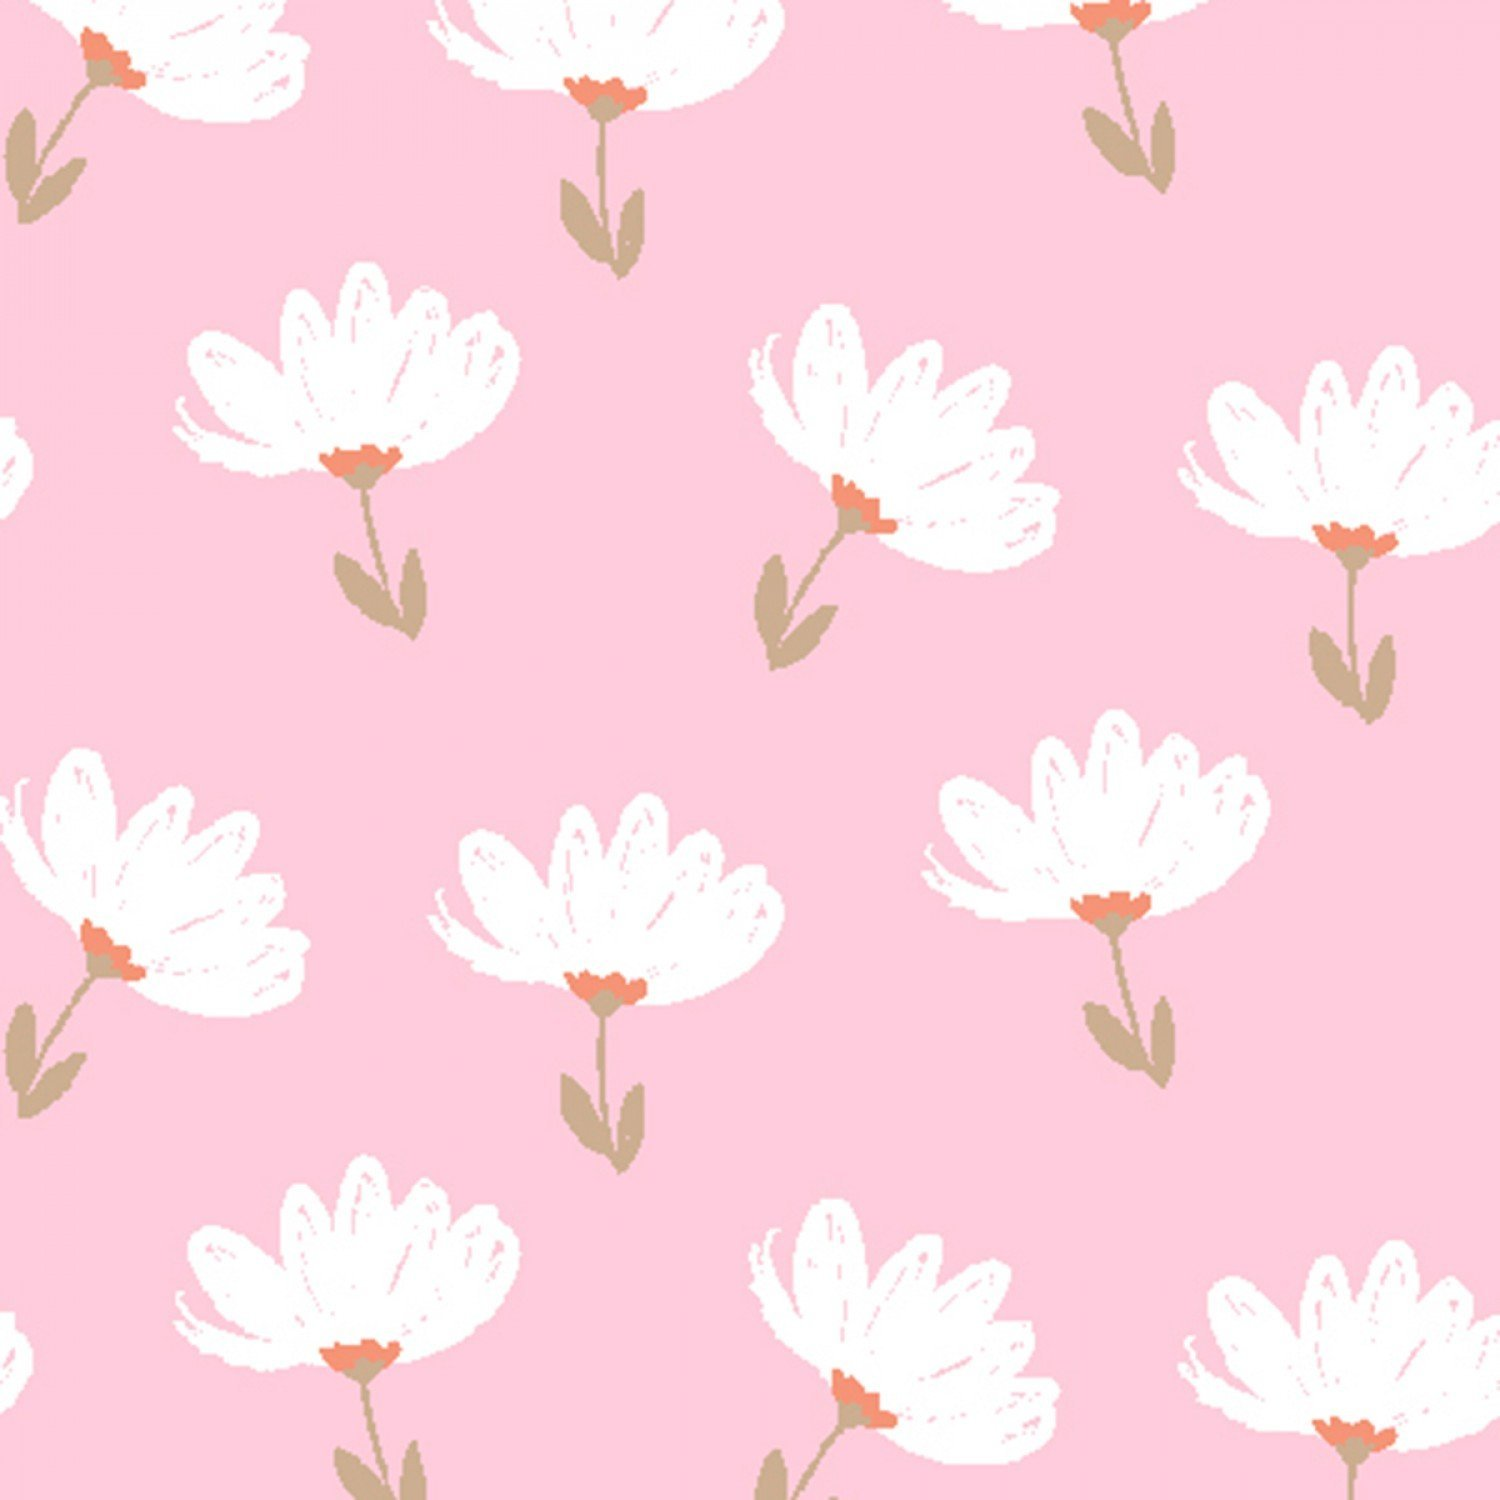 Playful Cuties 3 - White Floral Flannel - by 3 Wishes